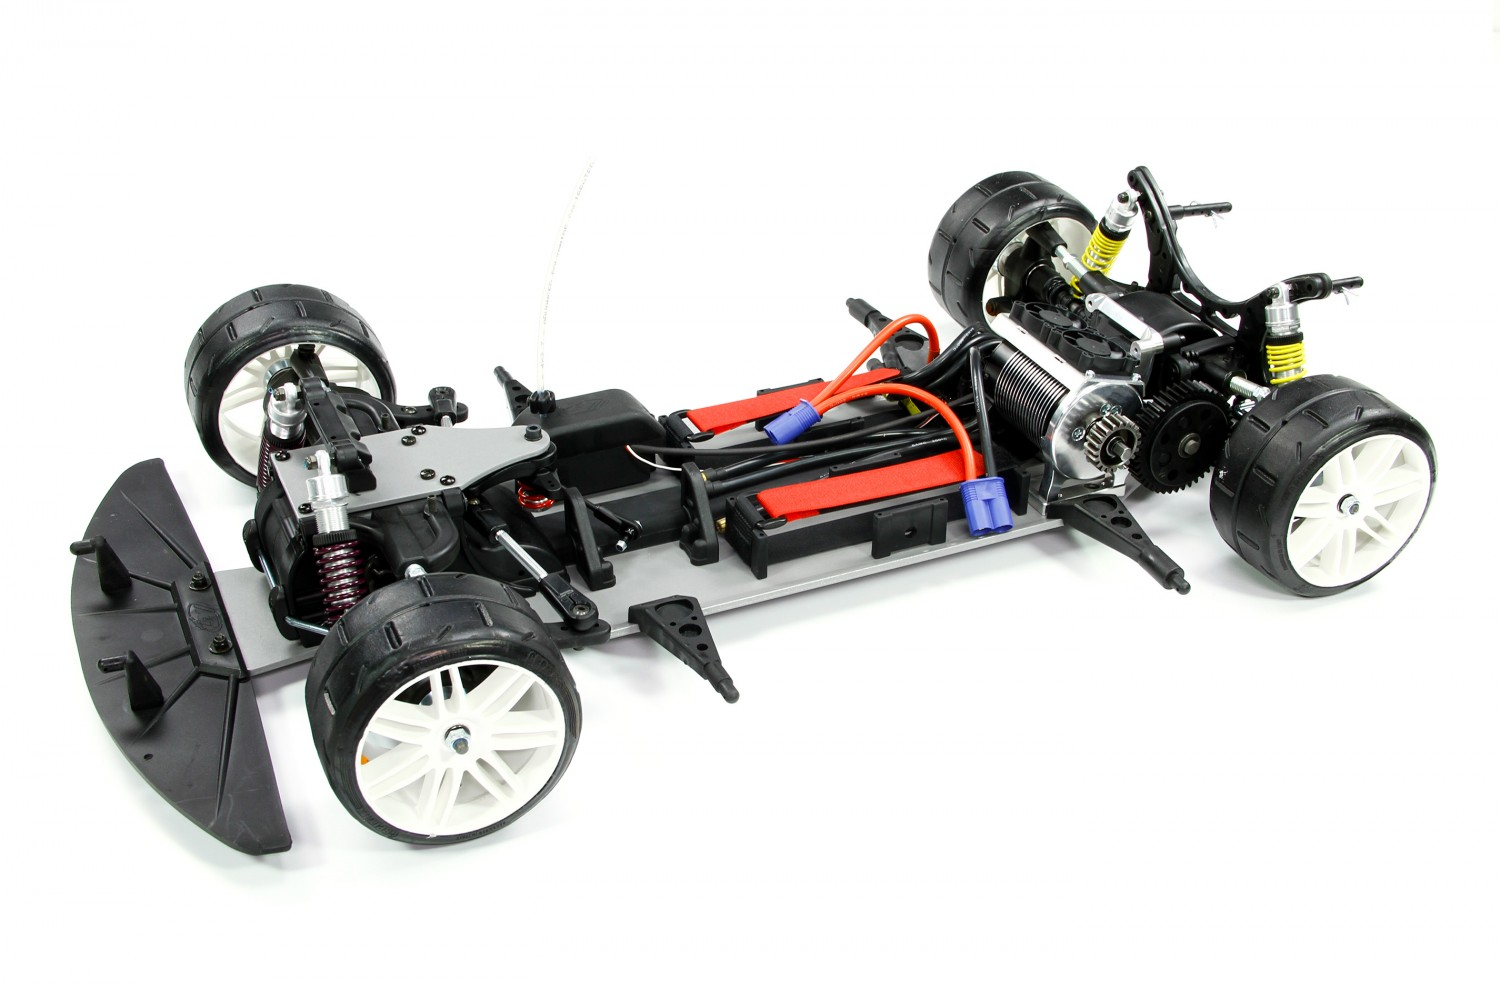 rc electric fg sportsline 4wd parallel porsche series 962c elektro ht edition batteries connection 2x 3s recommend 6s mustang painted